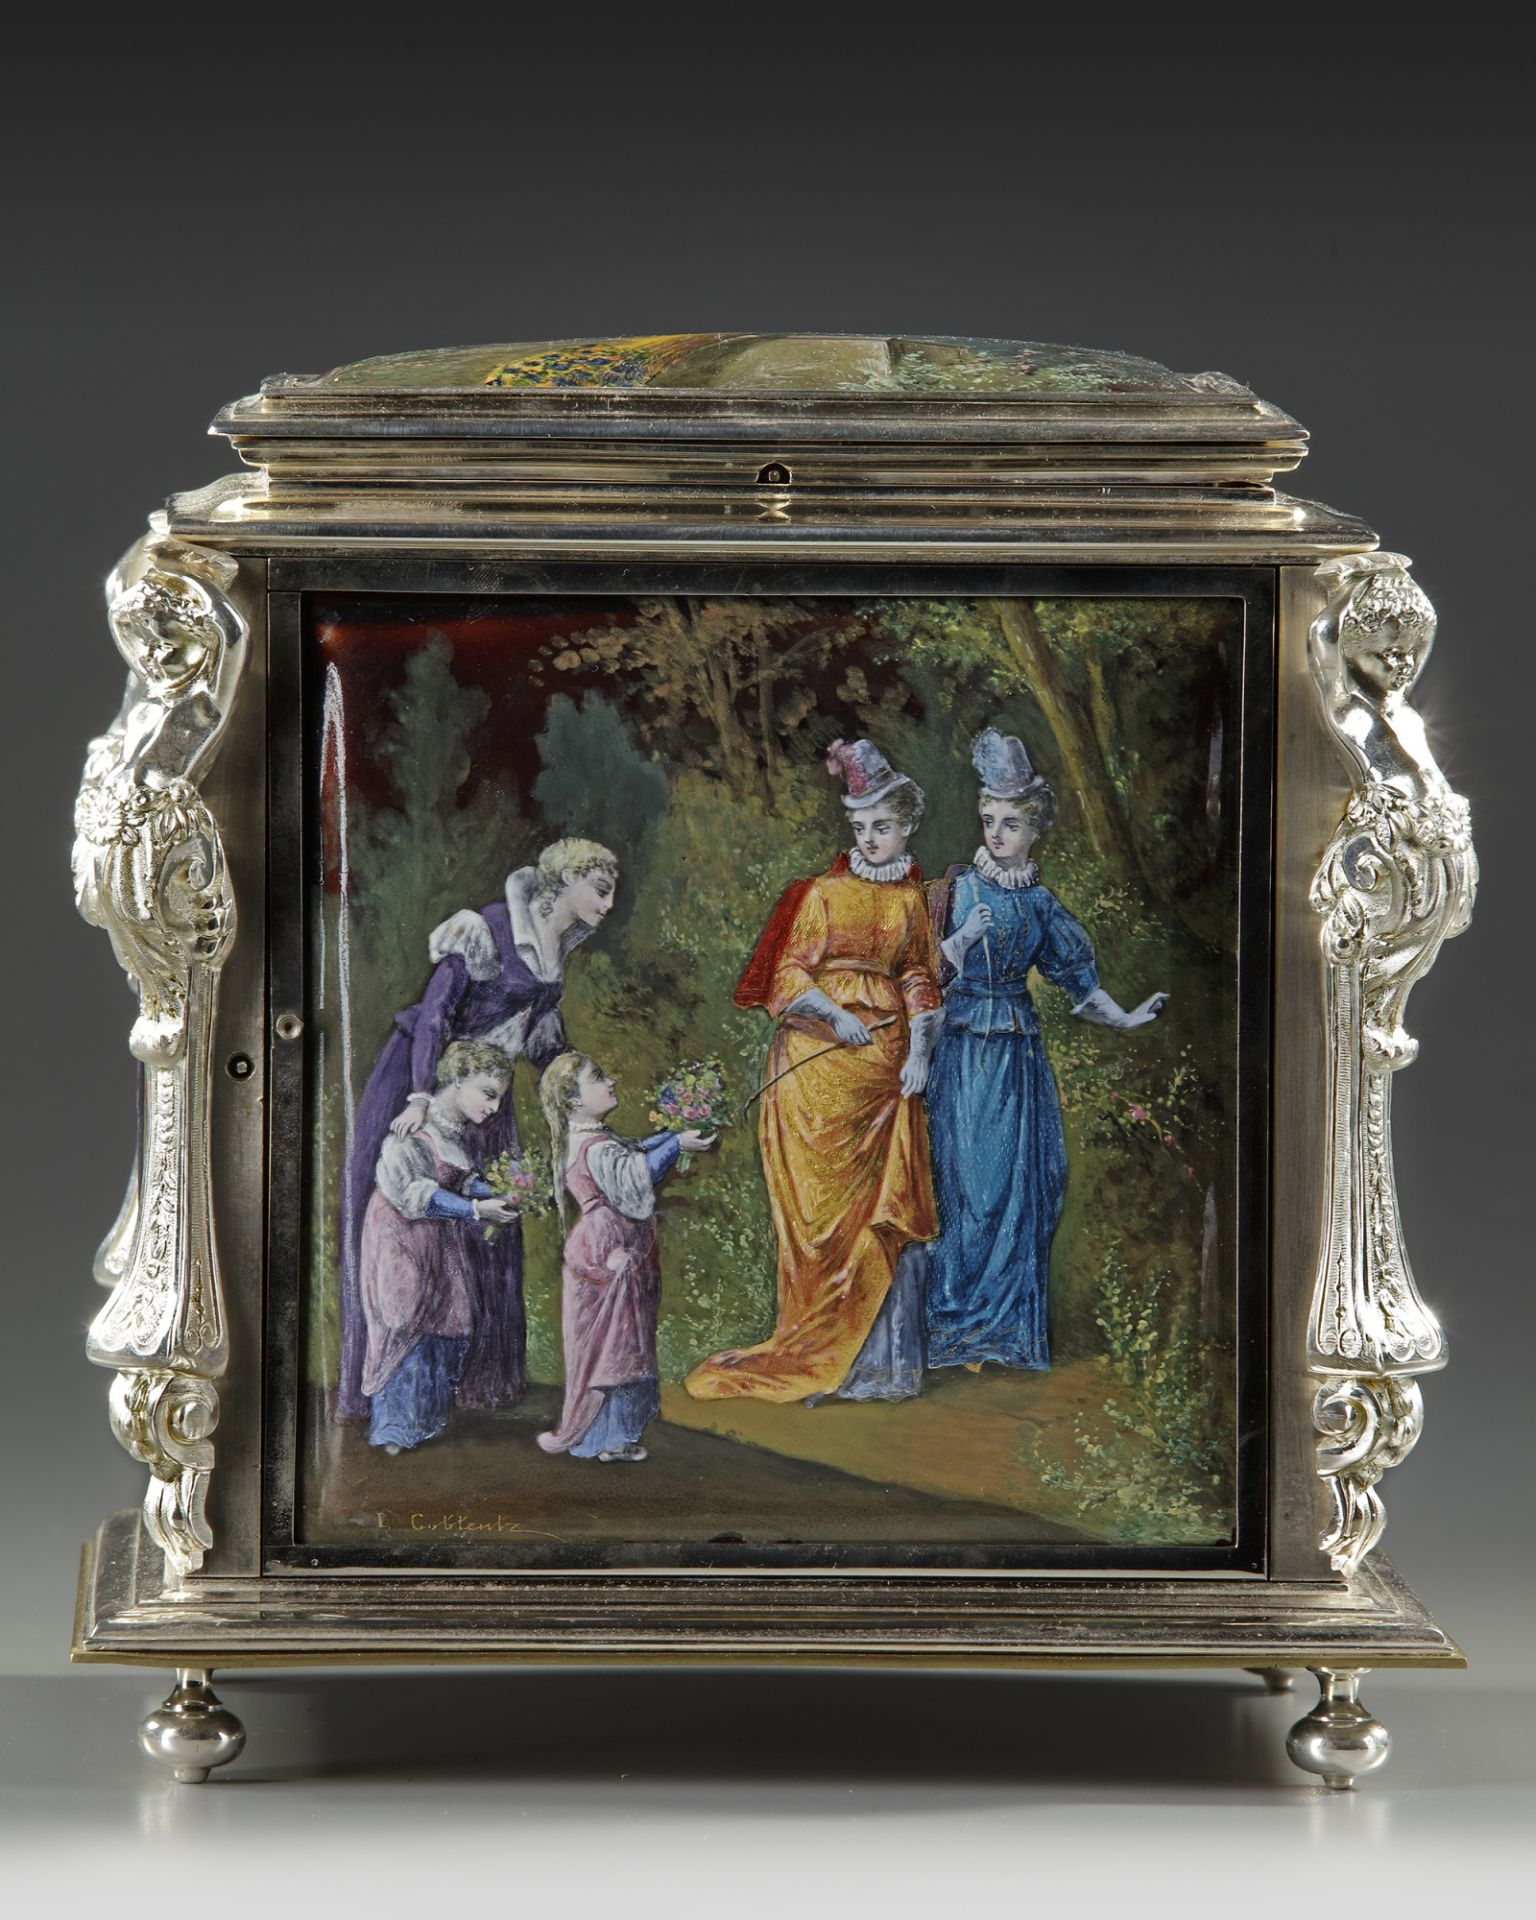 A JEWELRY BOX, FRANCE, LATE 19TH CENTURY - Image 5 of 5